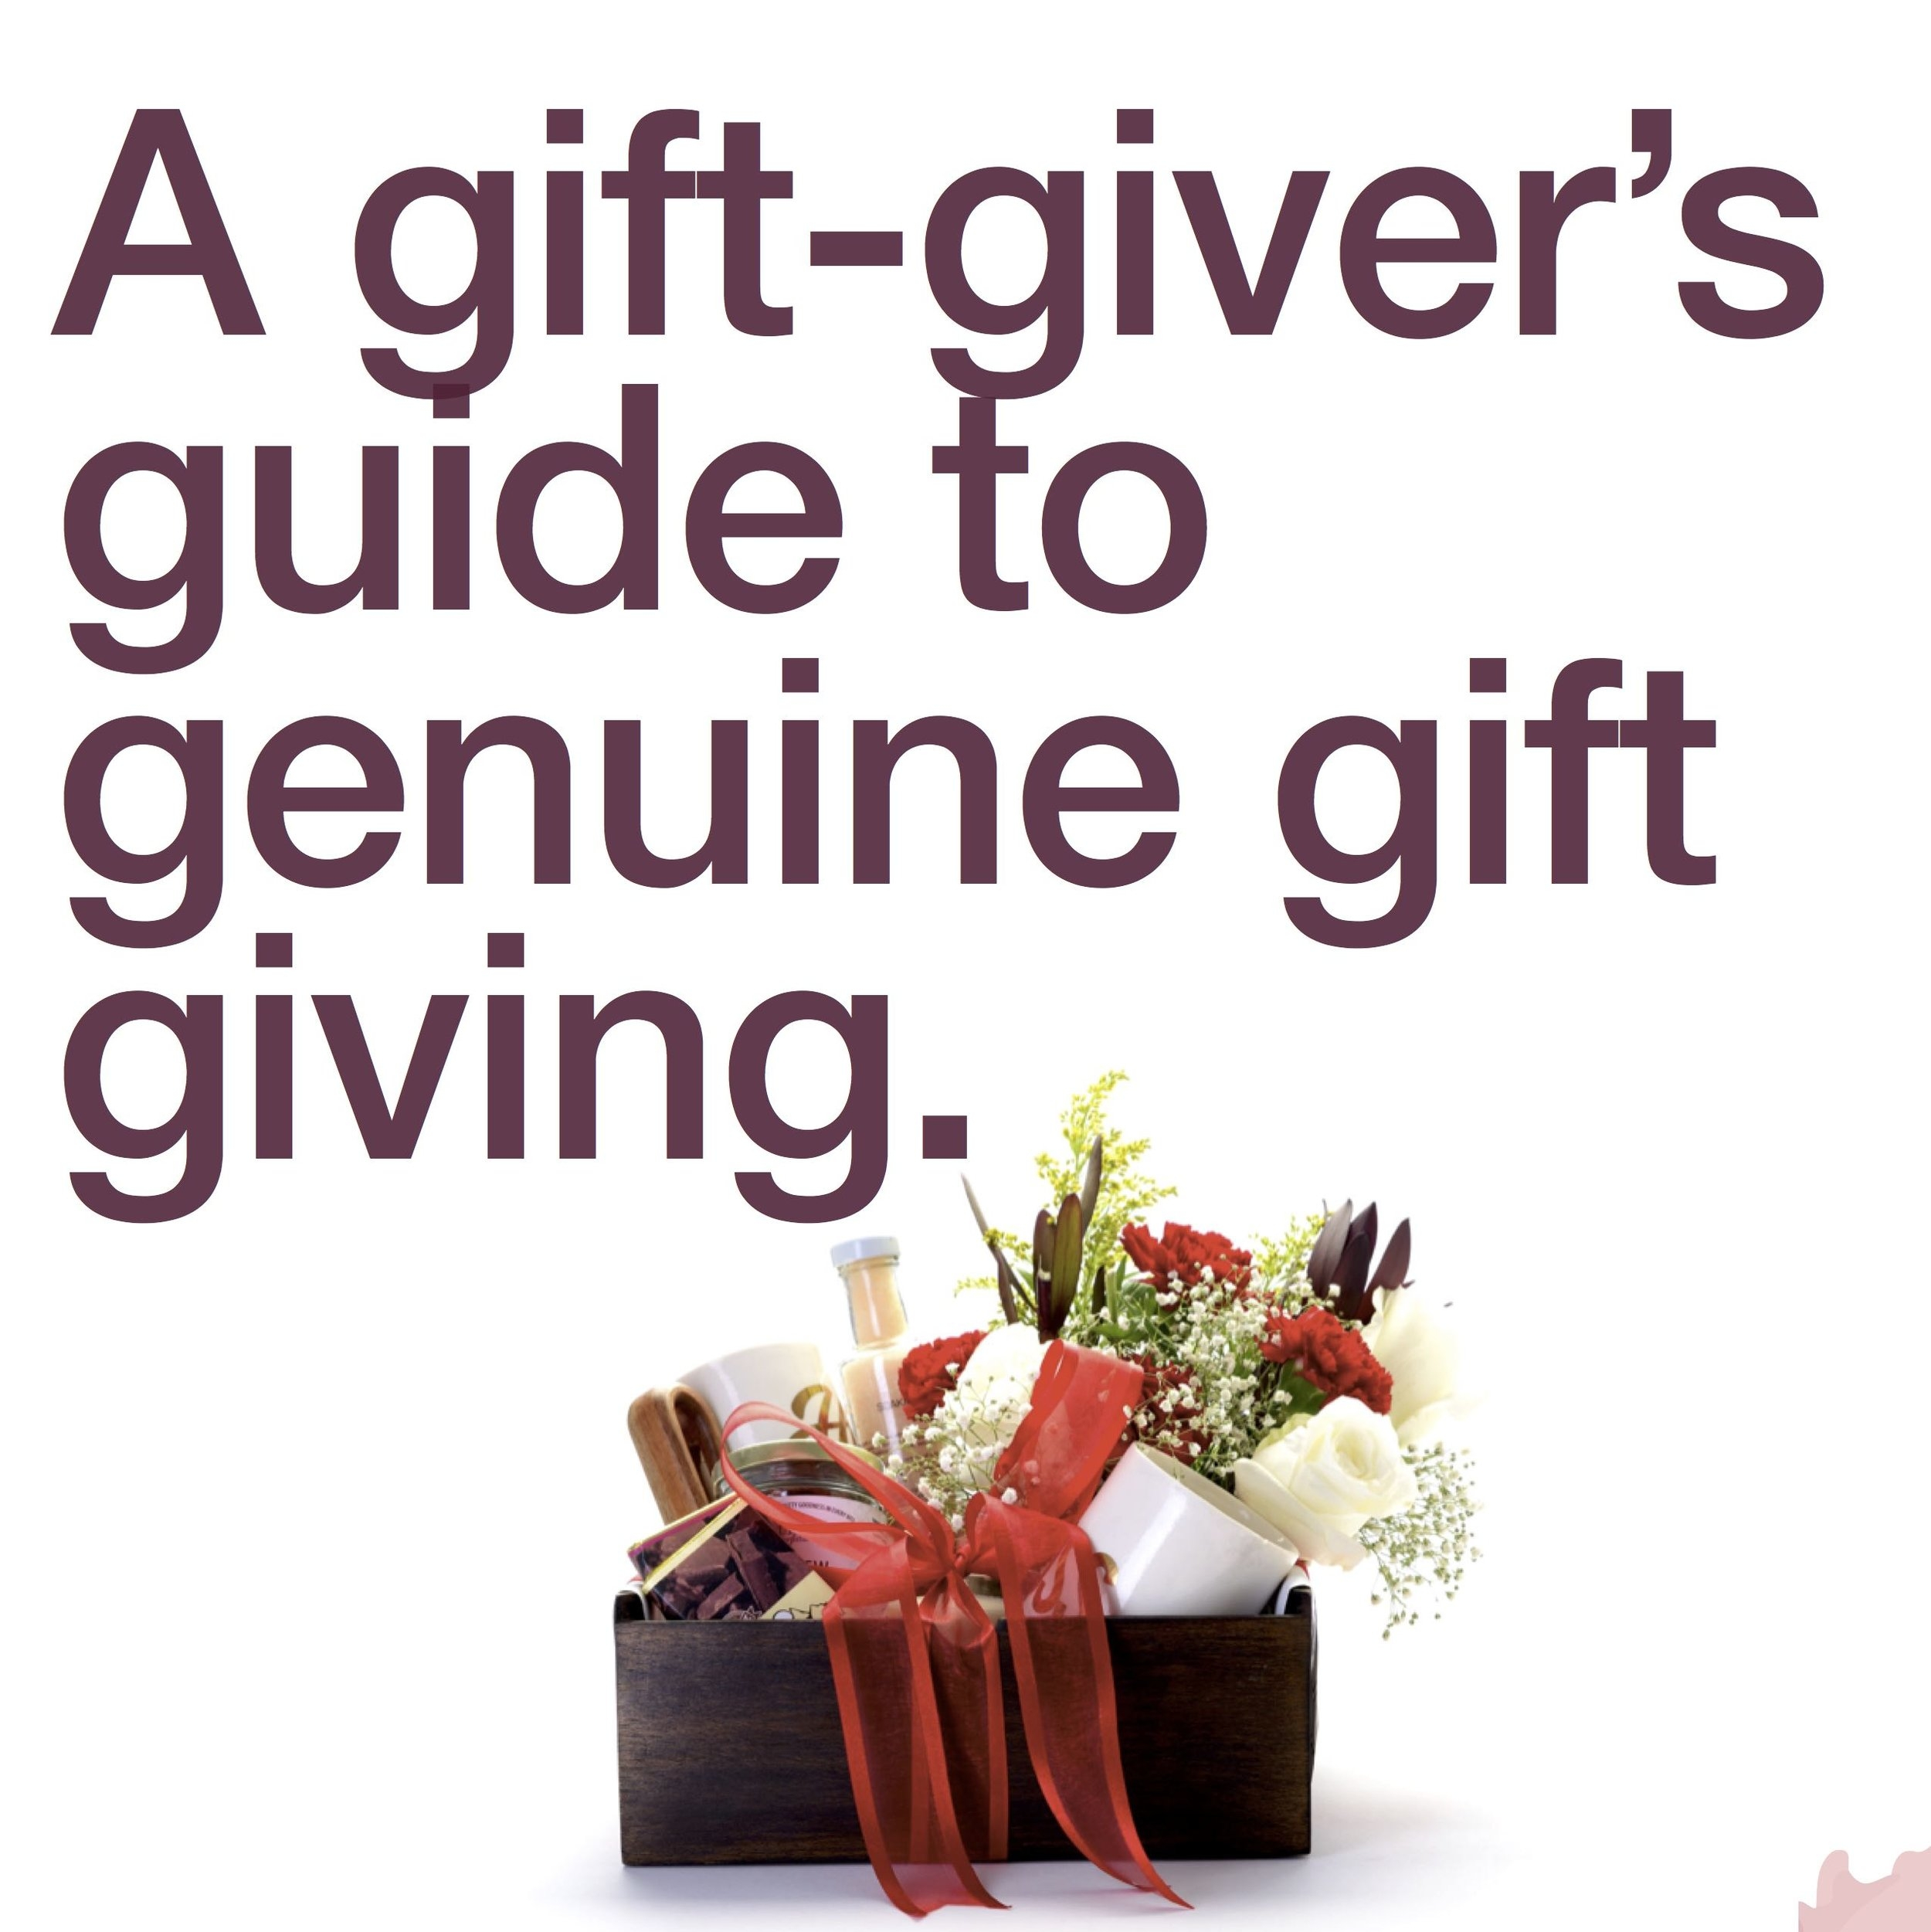 A-Gift-givers-Guide-to-Genuine-Gift-Giving.jpg